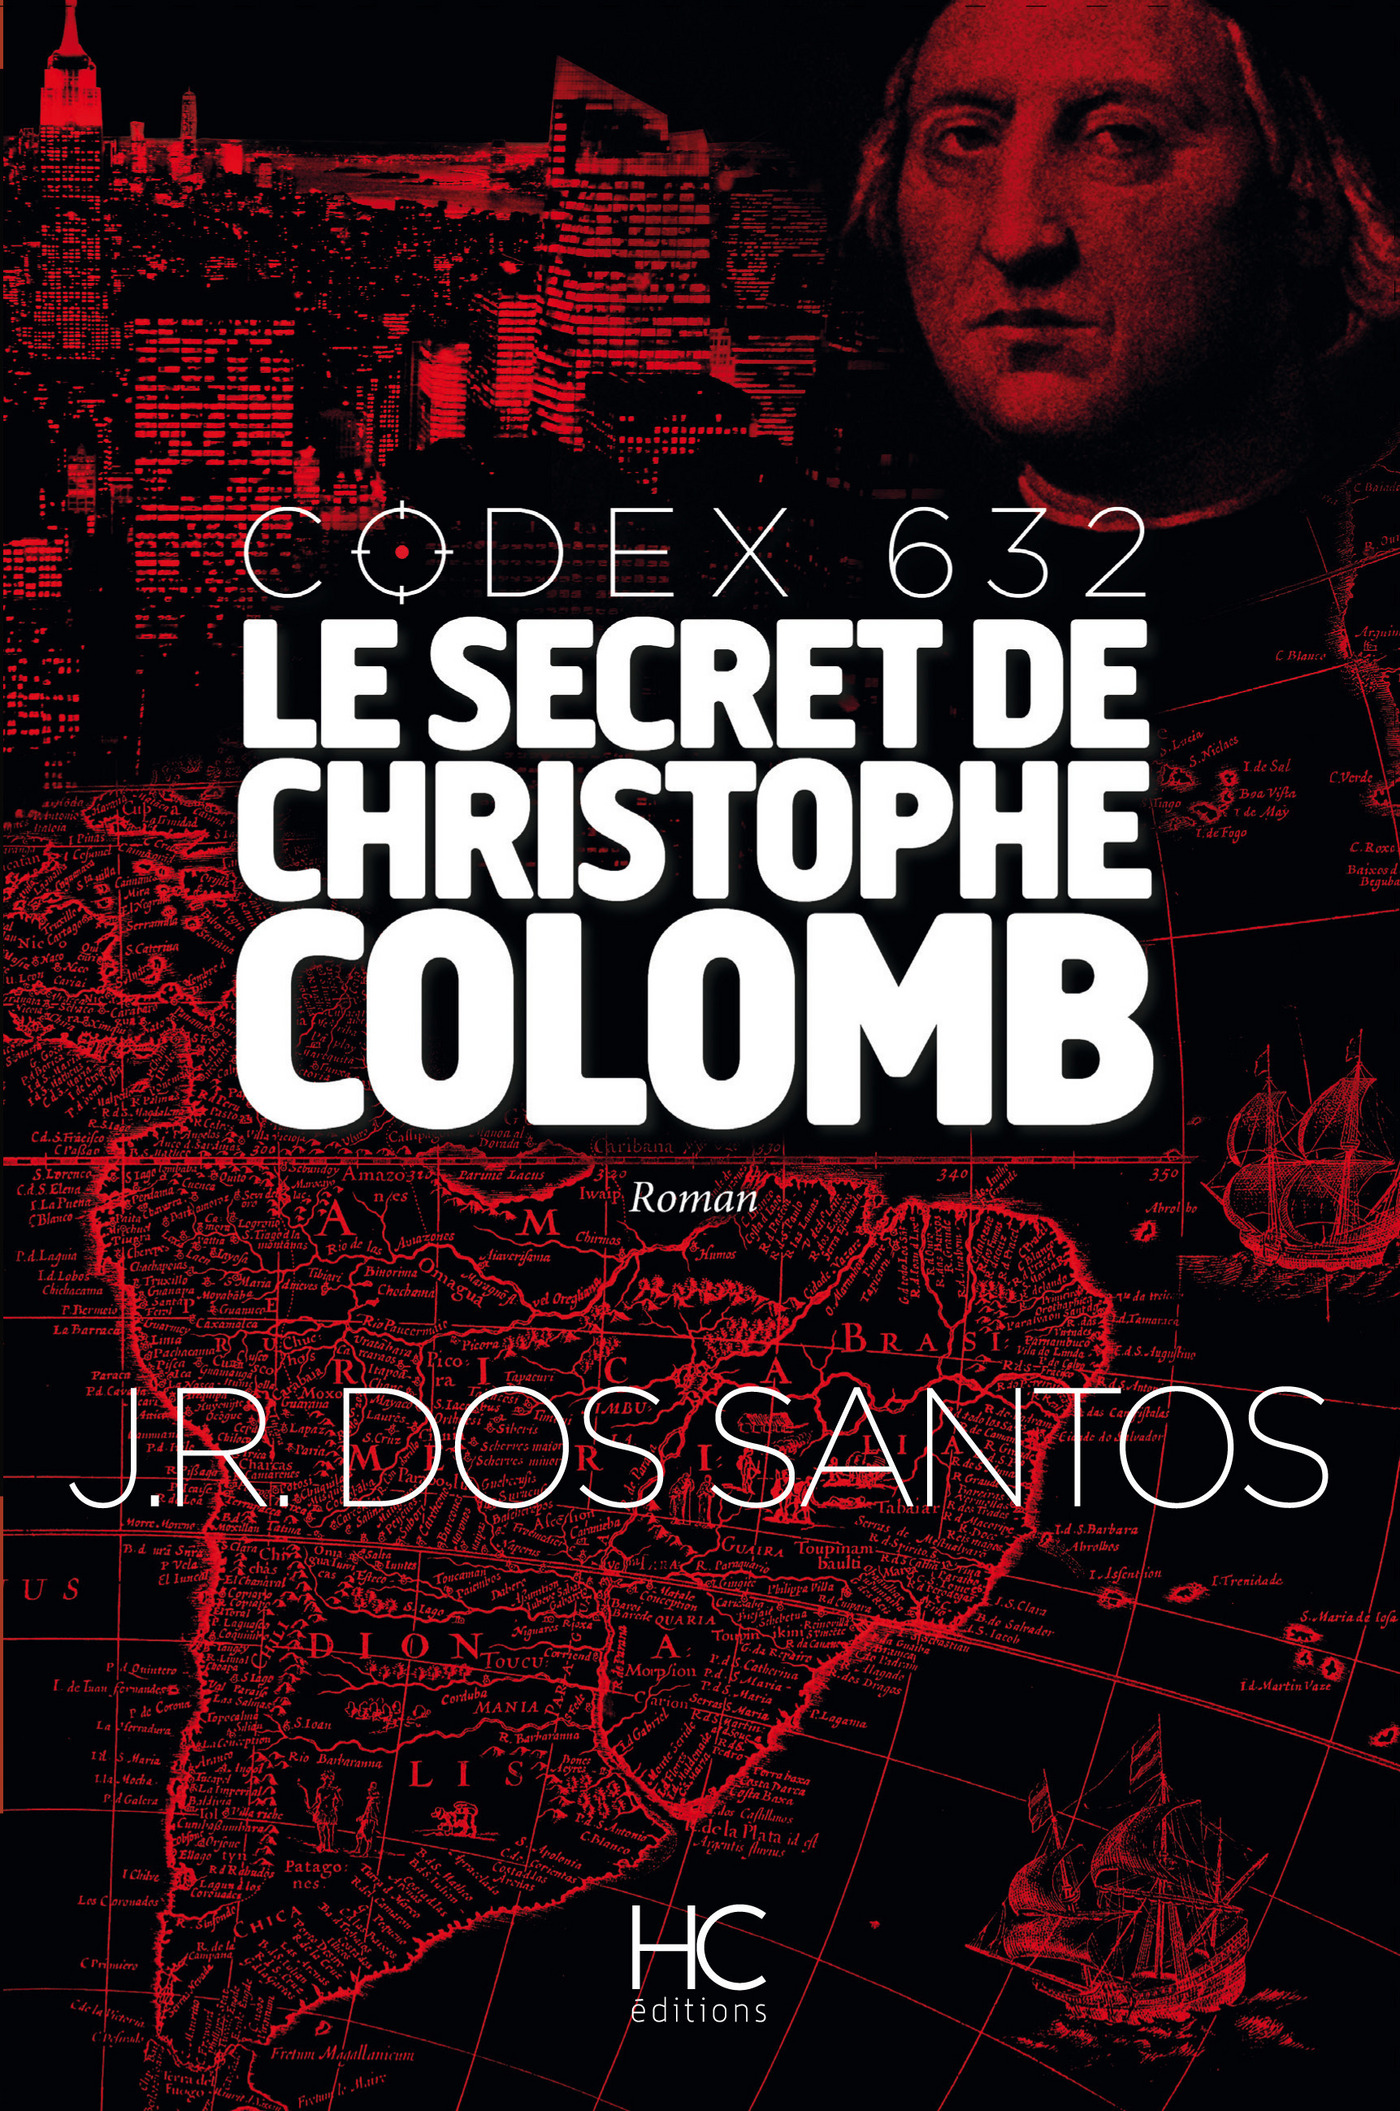 Vignette du livre Codex 632: le secret de Christophe Colomb